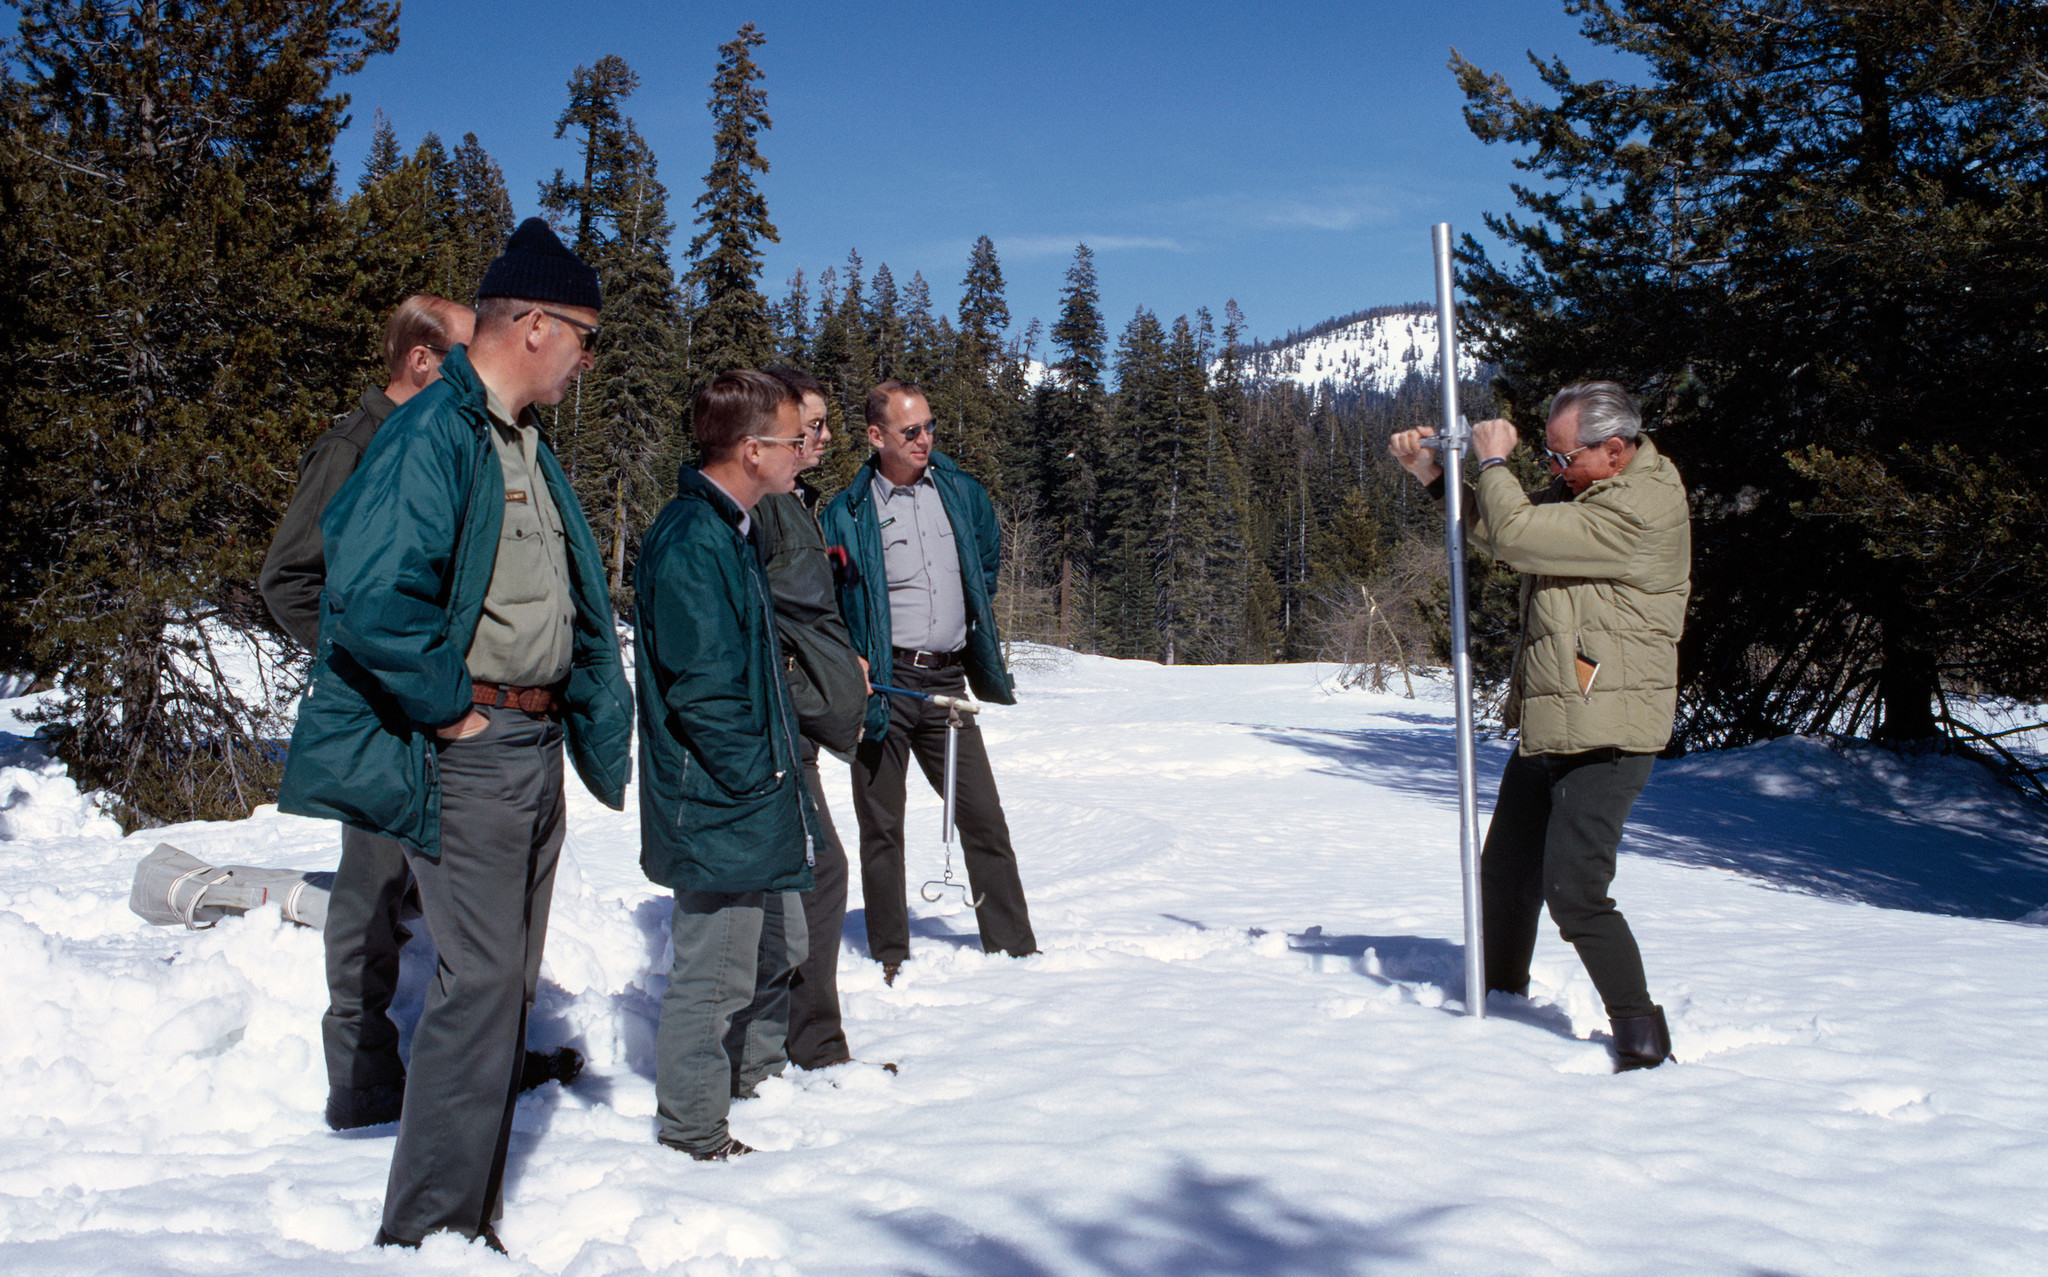 Ned Peterson, right, of the California Department of Water Resources demonstrates how to use the snowpack sampler during a snow survey class in 1969.